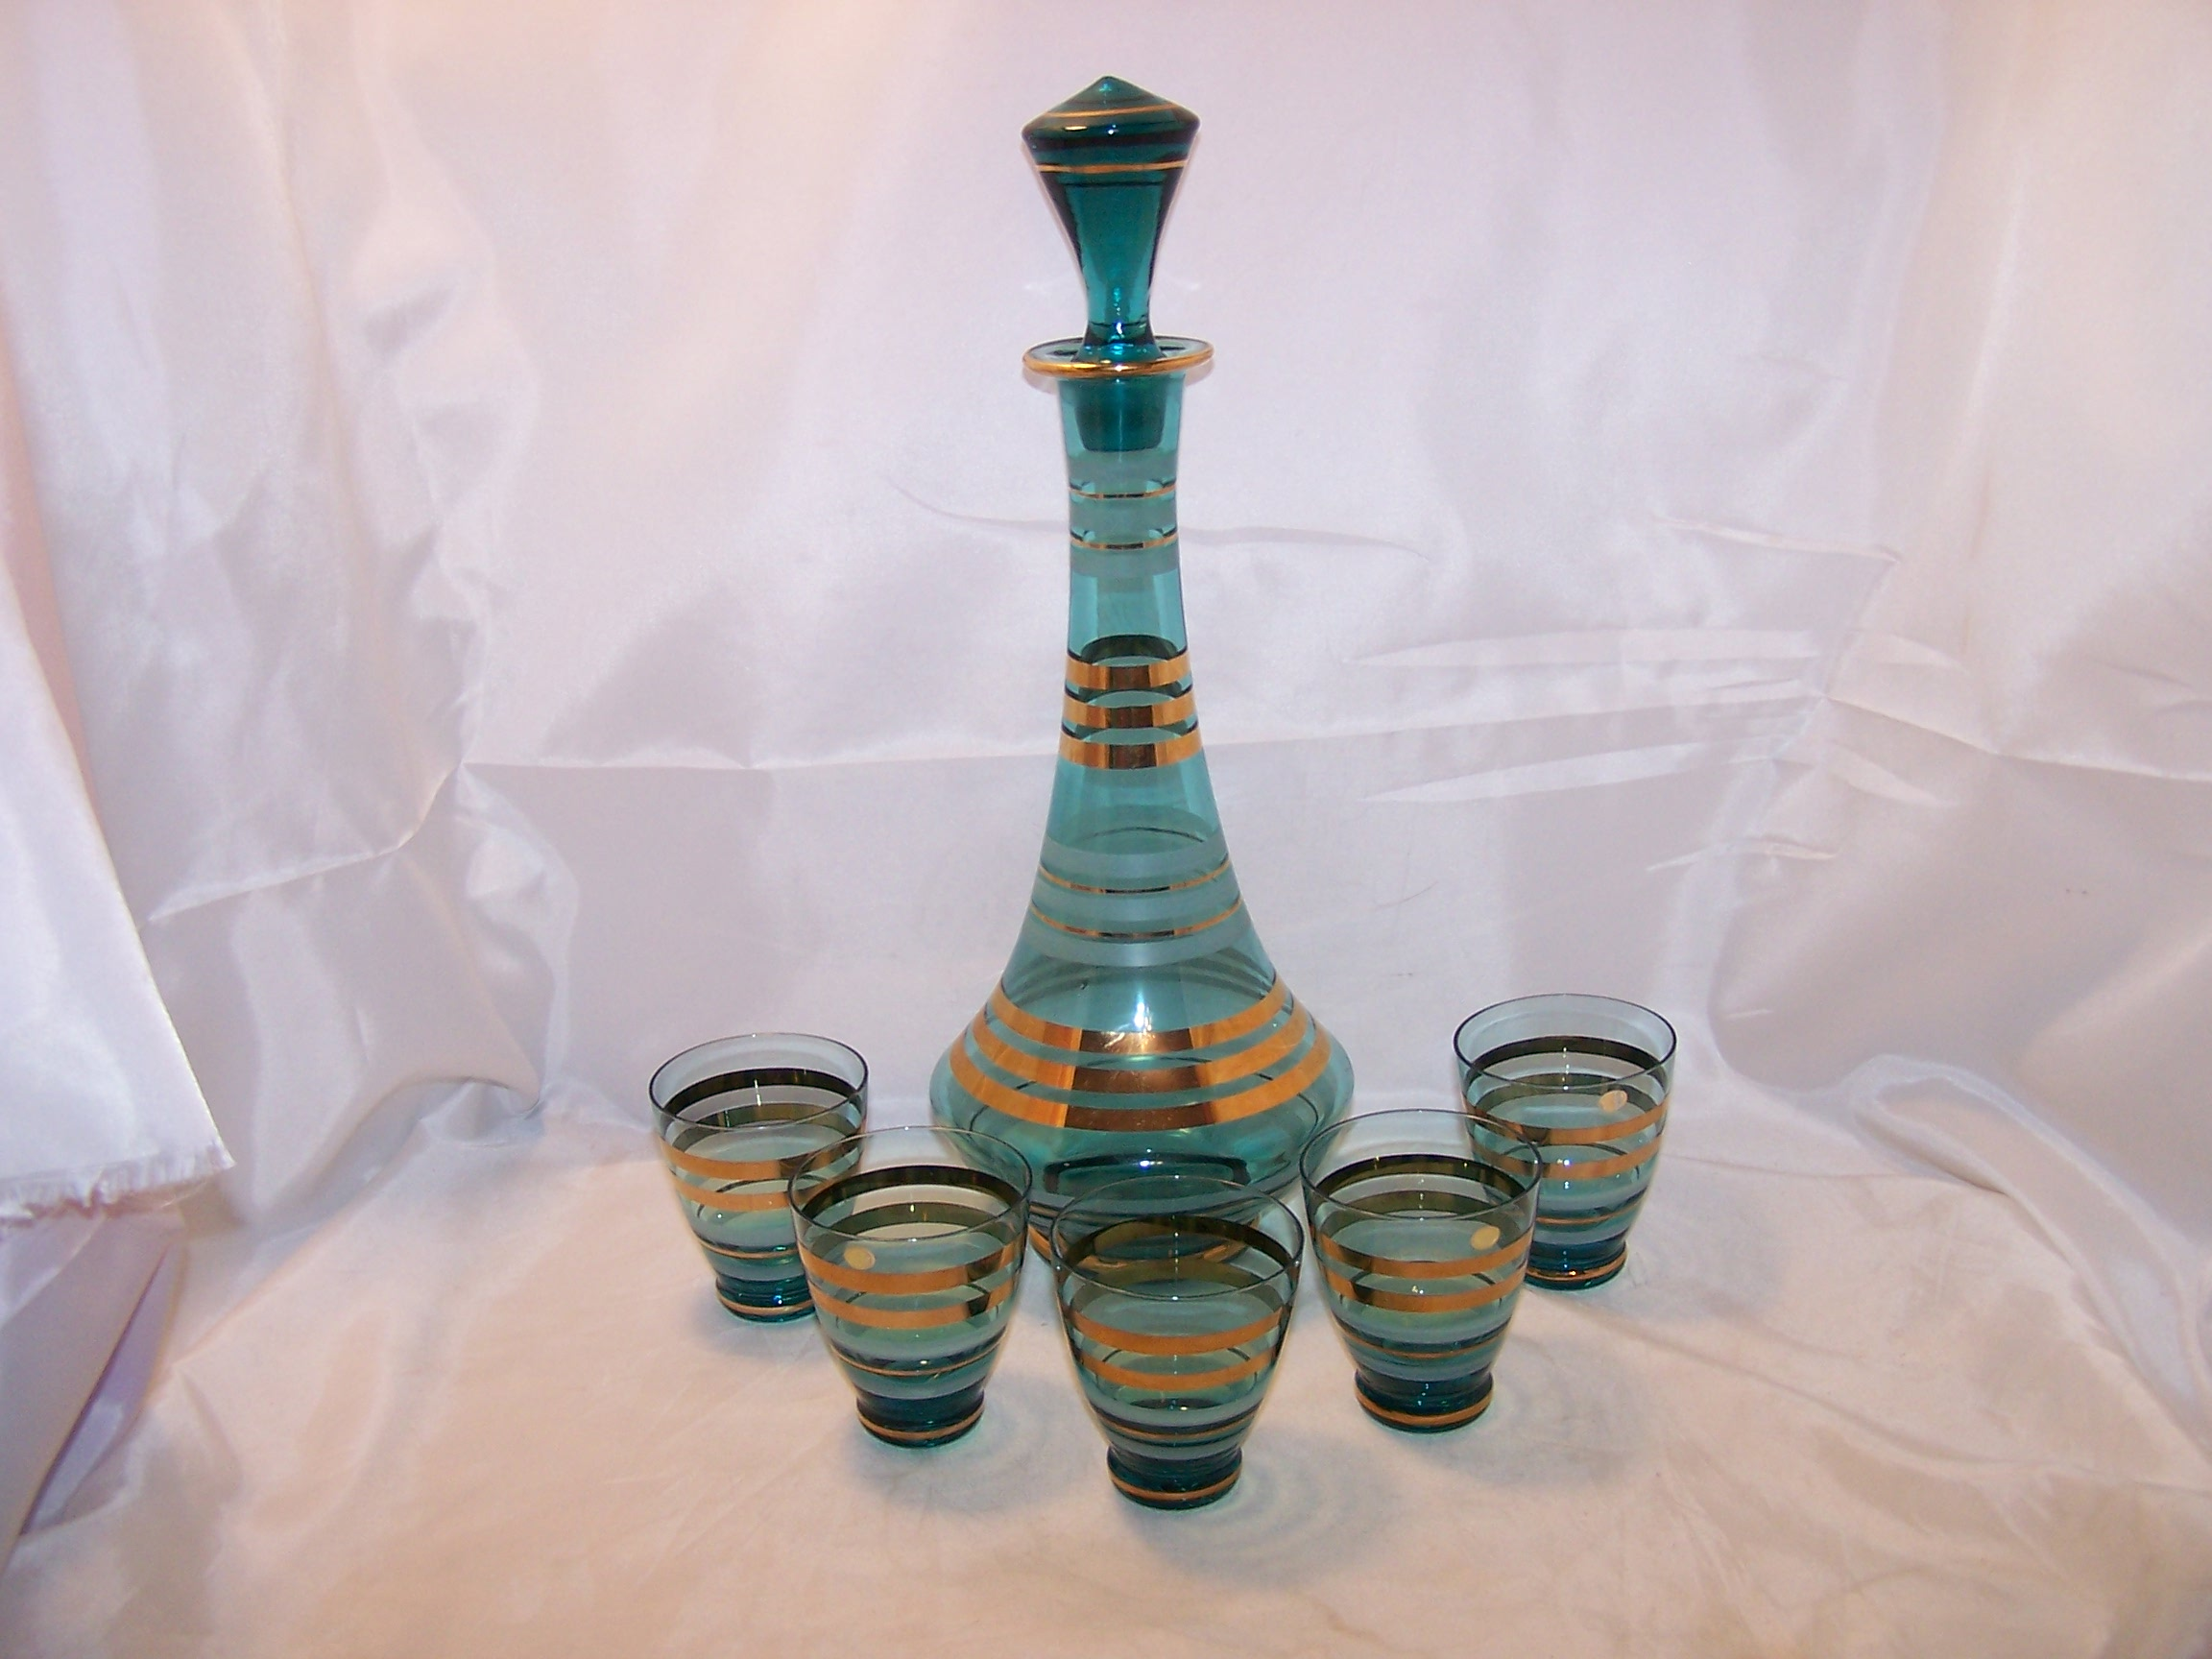 Hungary Striped Decanter, Glasses, Teal